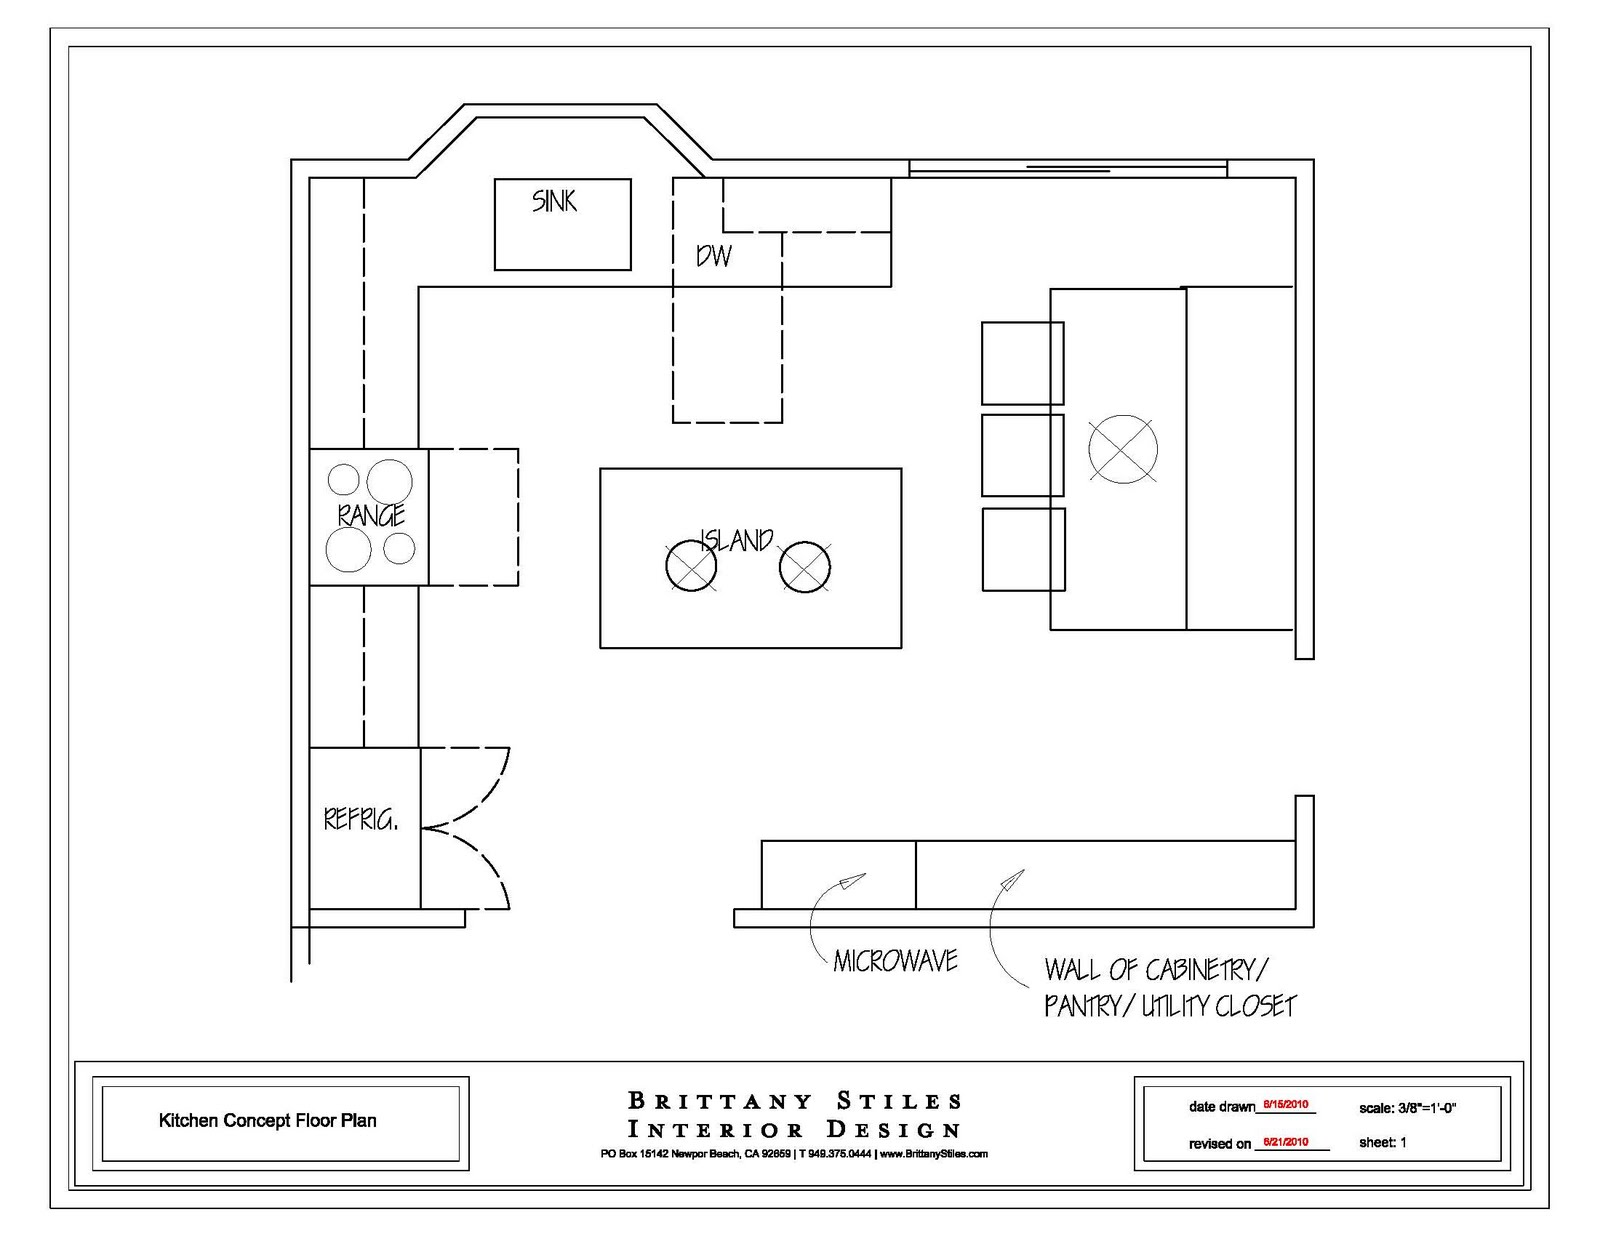 Modern comtemporary commercial kitchen equipment layout for Kitchen design layout